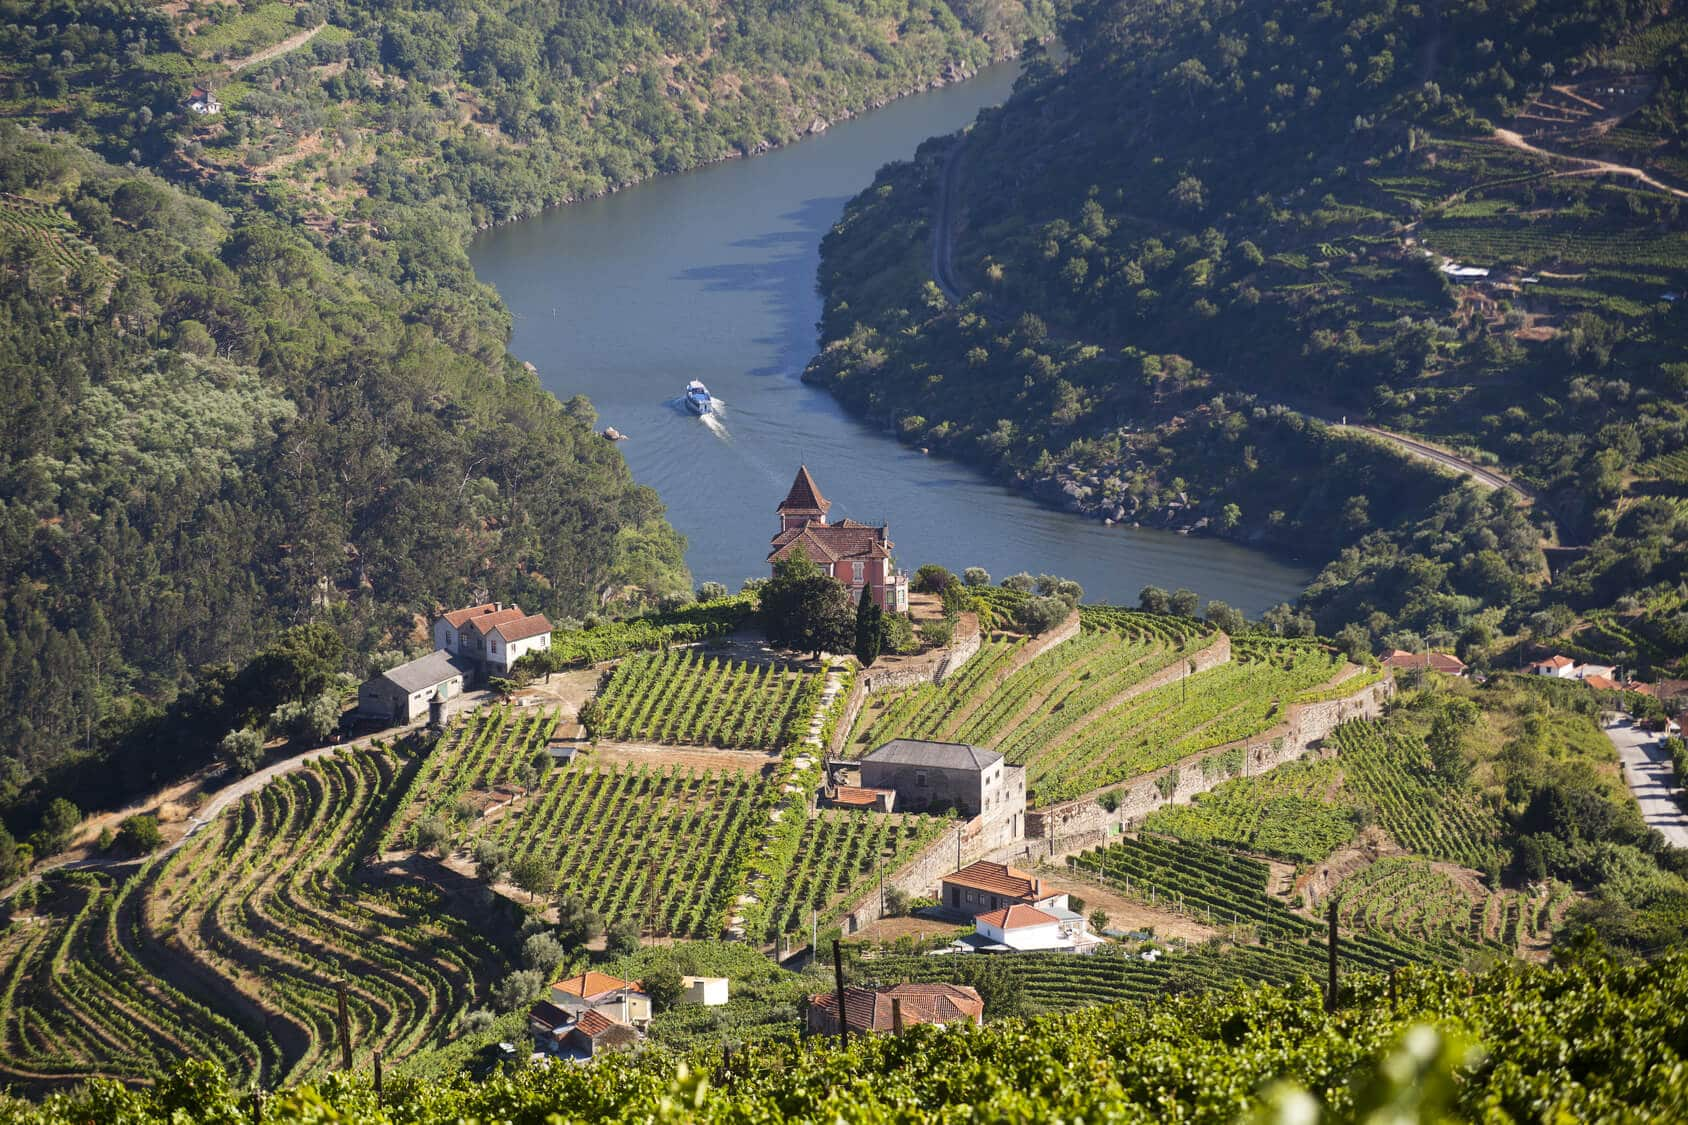 Douro Valley Tour of the River